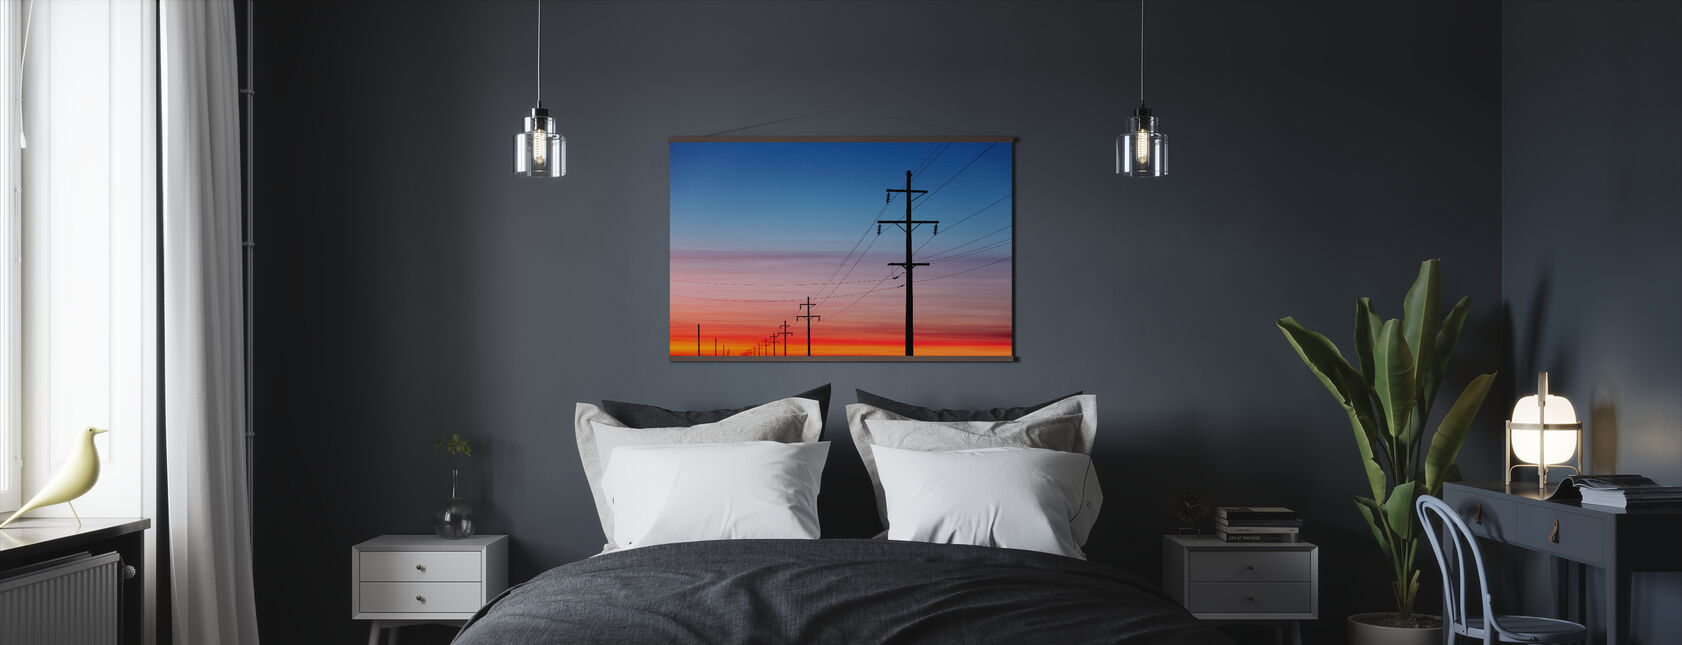 Power Lines at Sunset - Poster - Bedroom